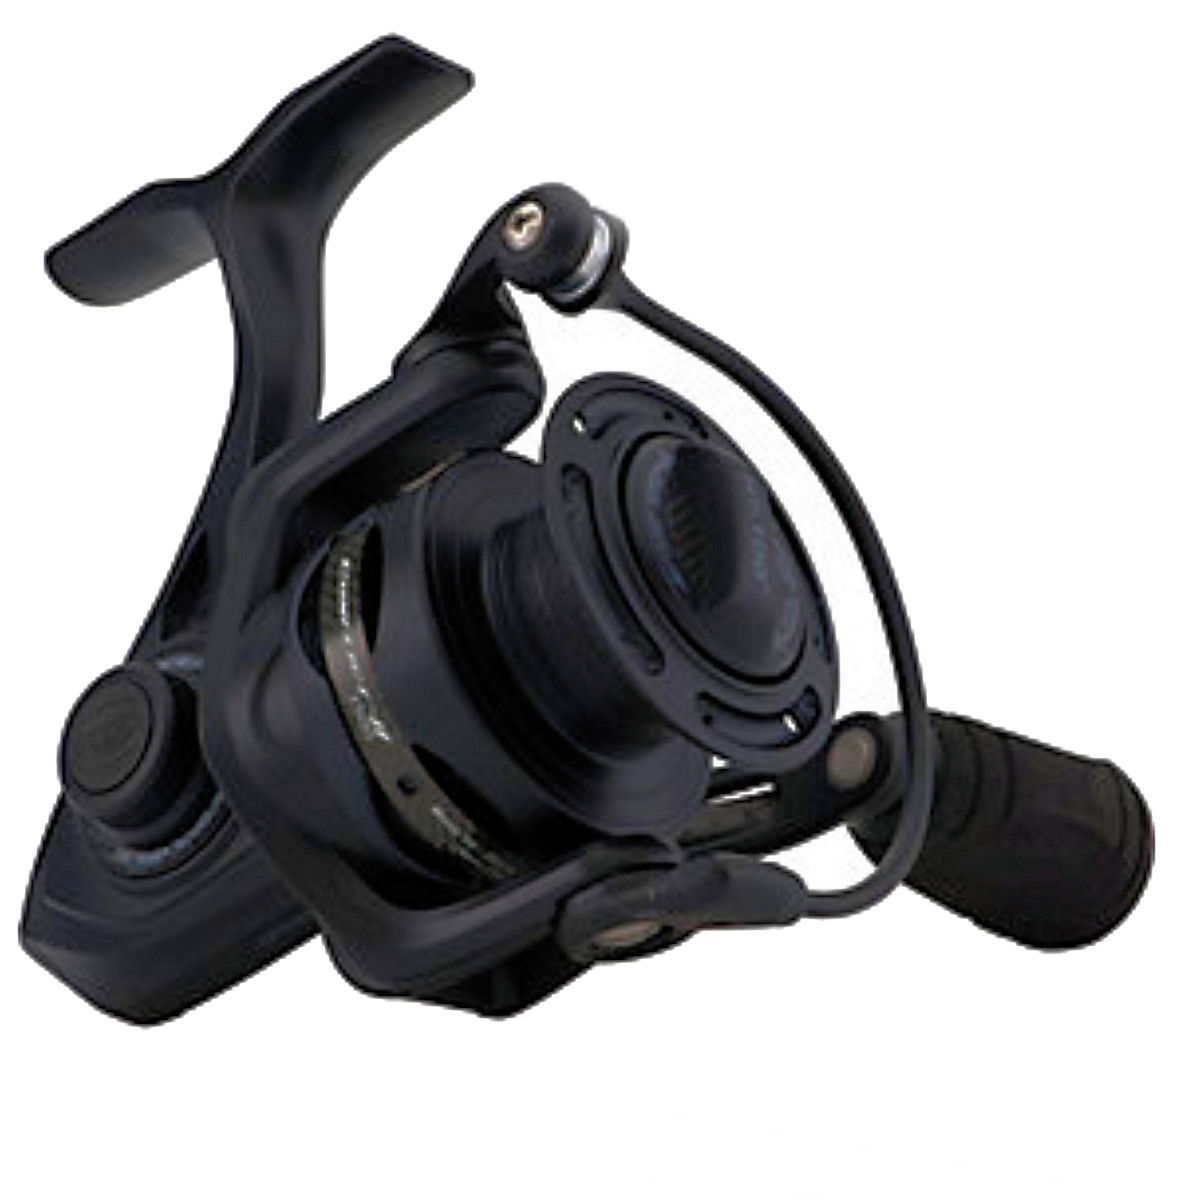 Penn CFTII1000 Conflict II Spinning Reel